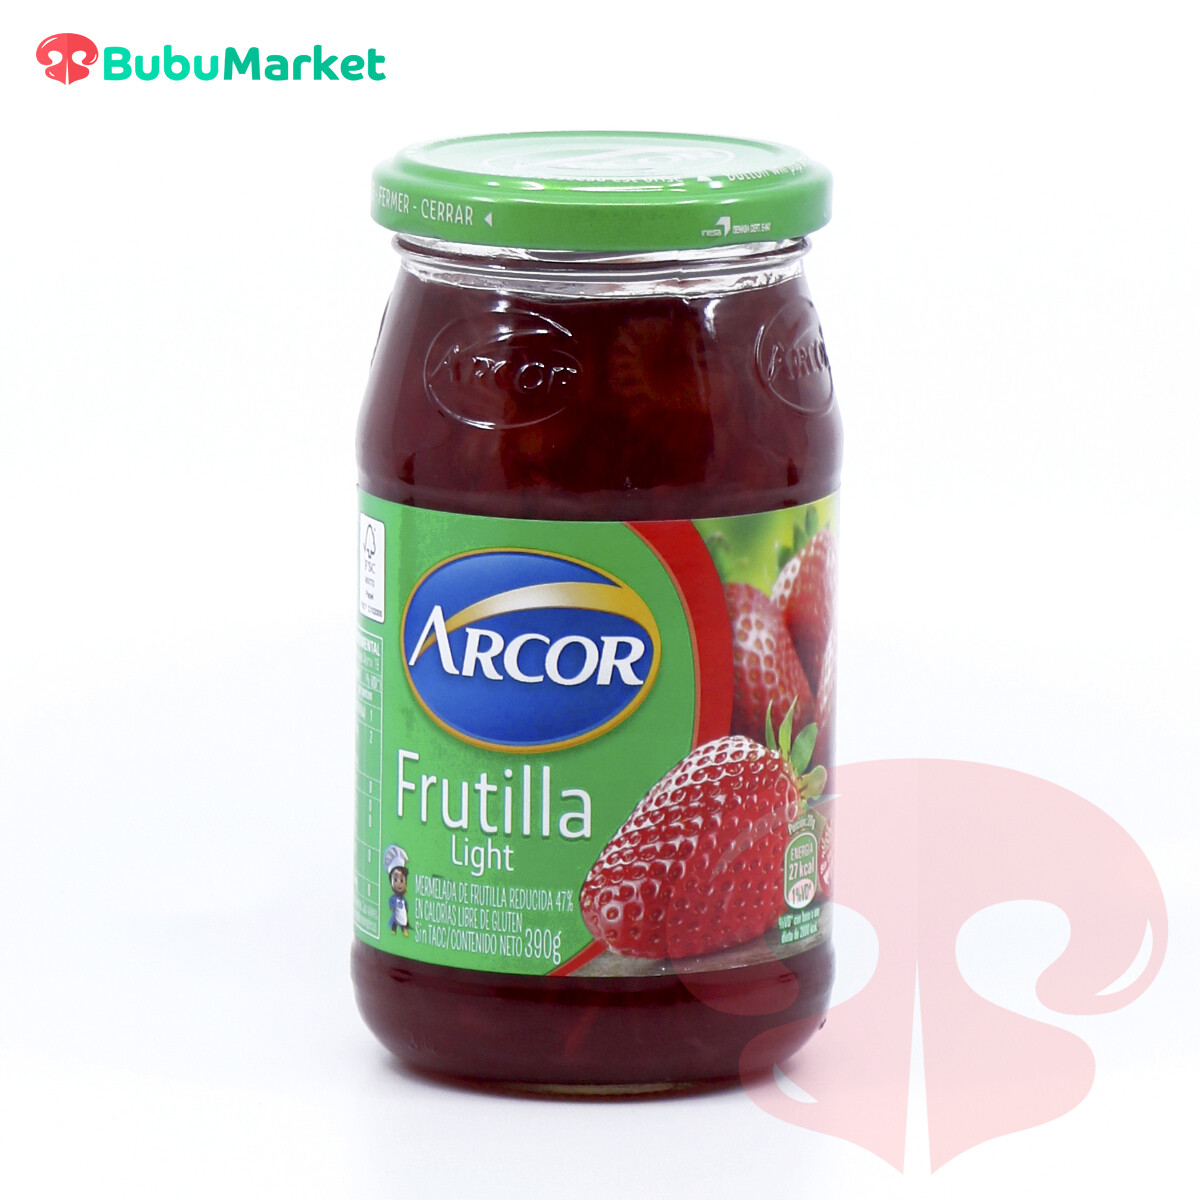 MERMELADA EN FRASCO FRUTILLA LIGHT ARCOR 390 GR.